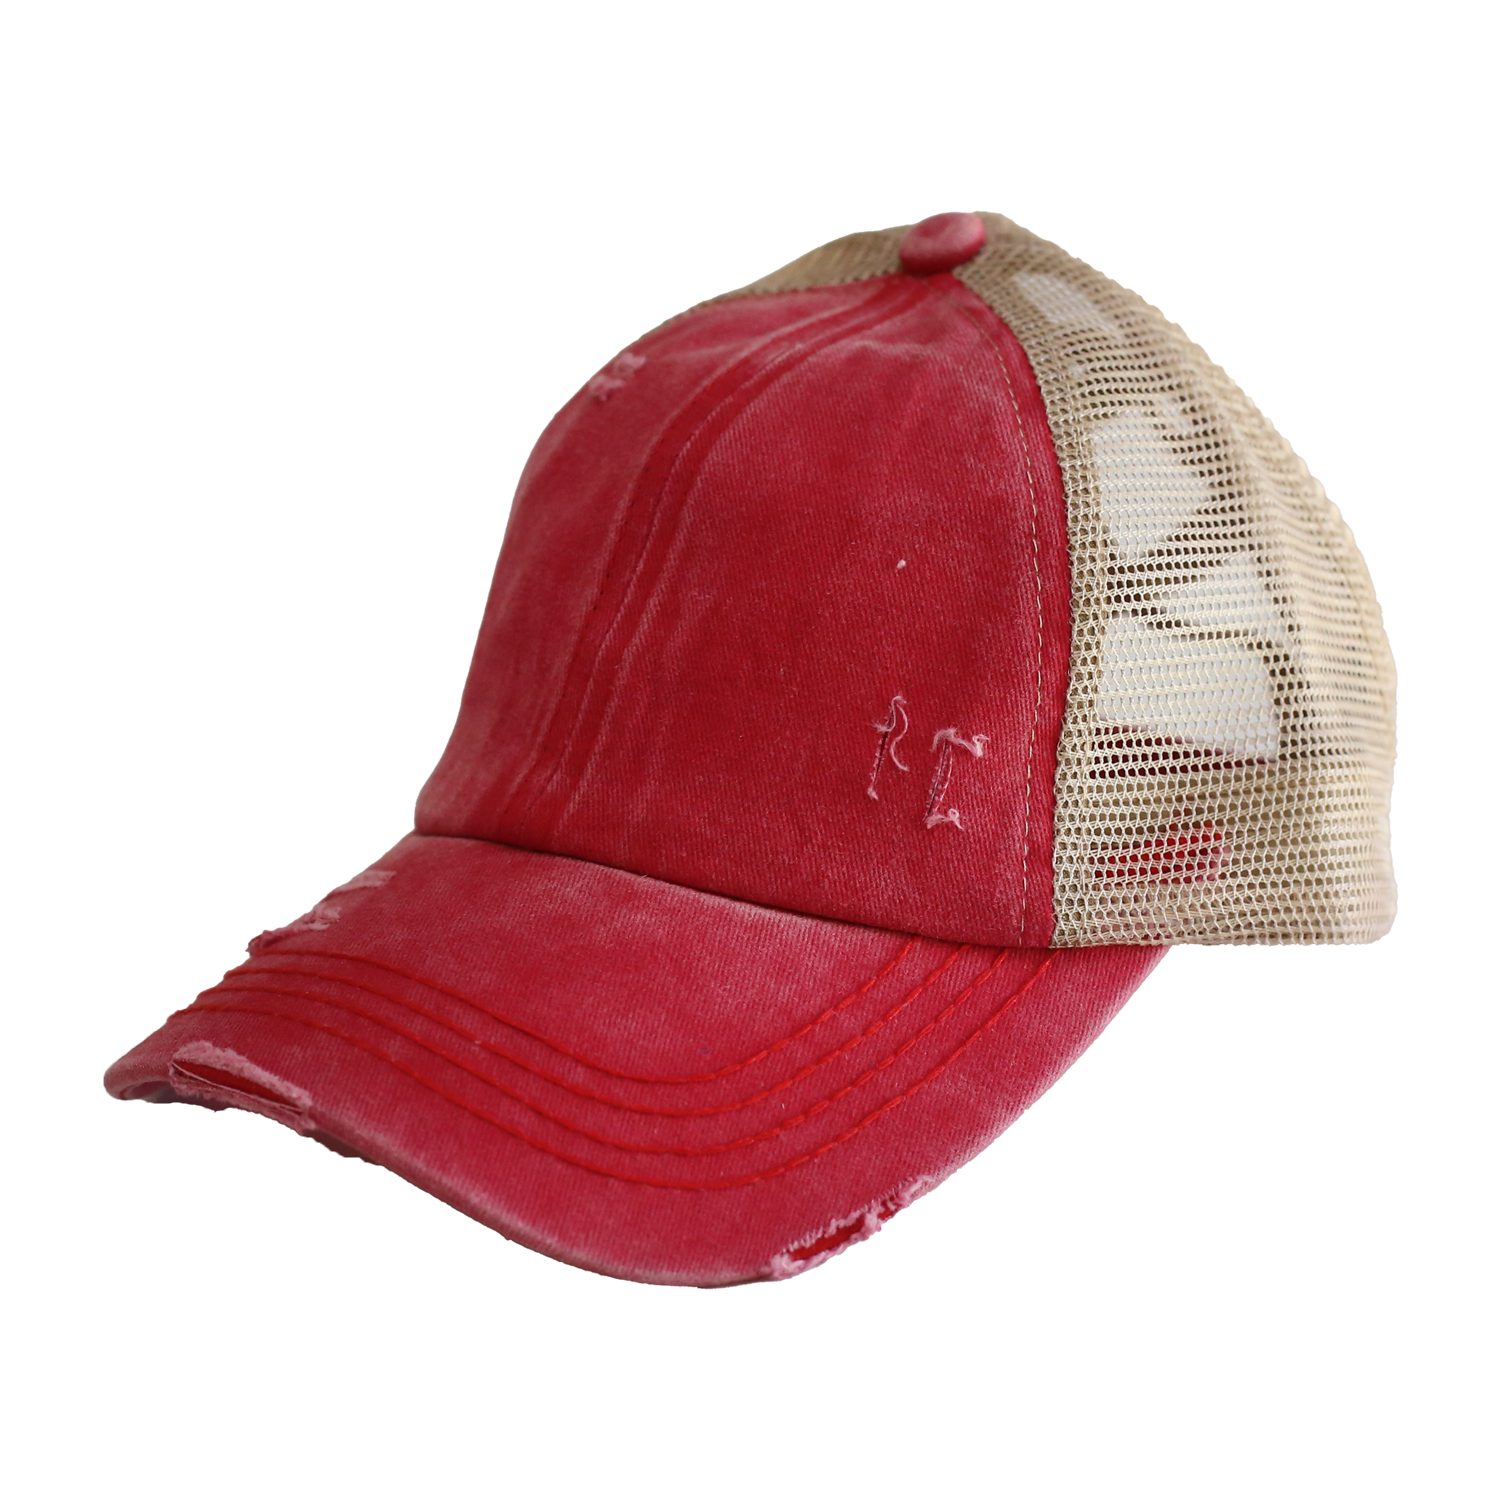 BT-780 C.C Criss Cross Pony Cap RED/BEIGE